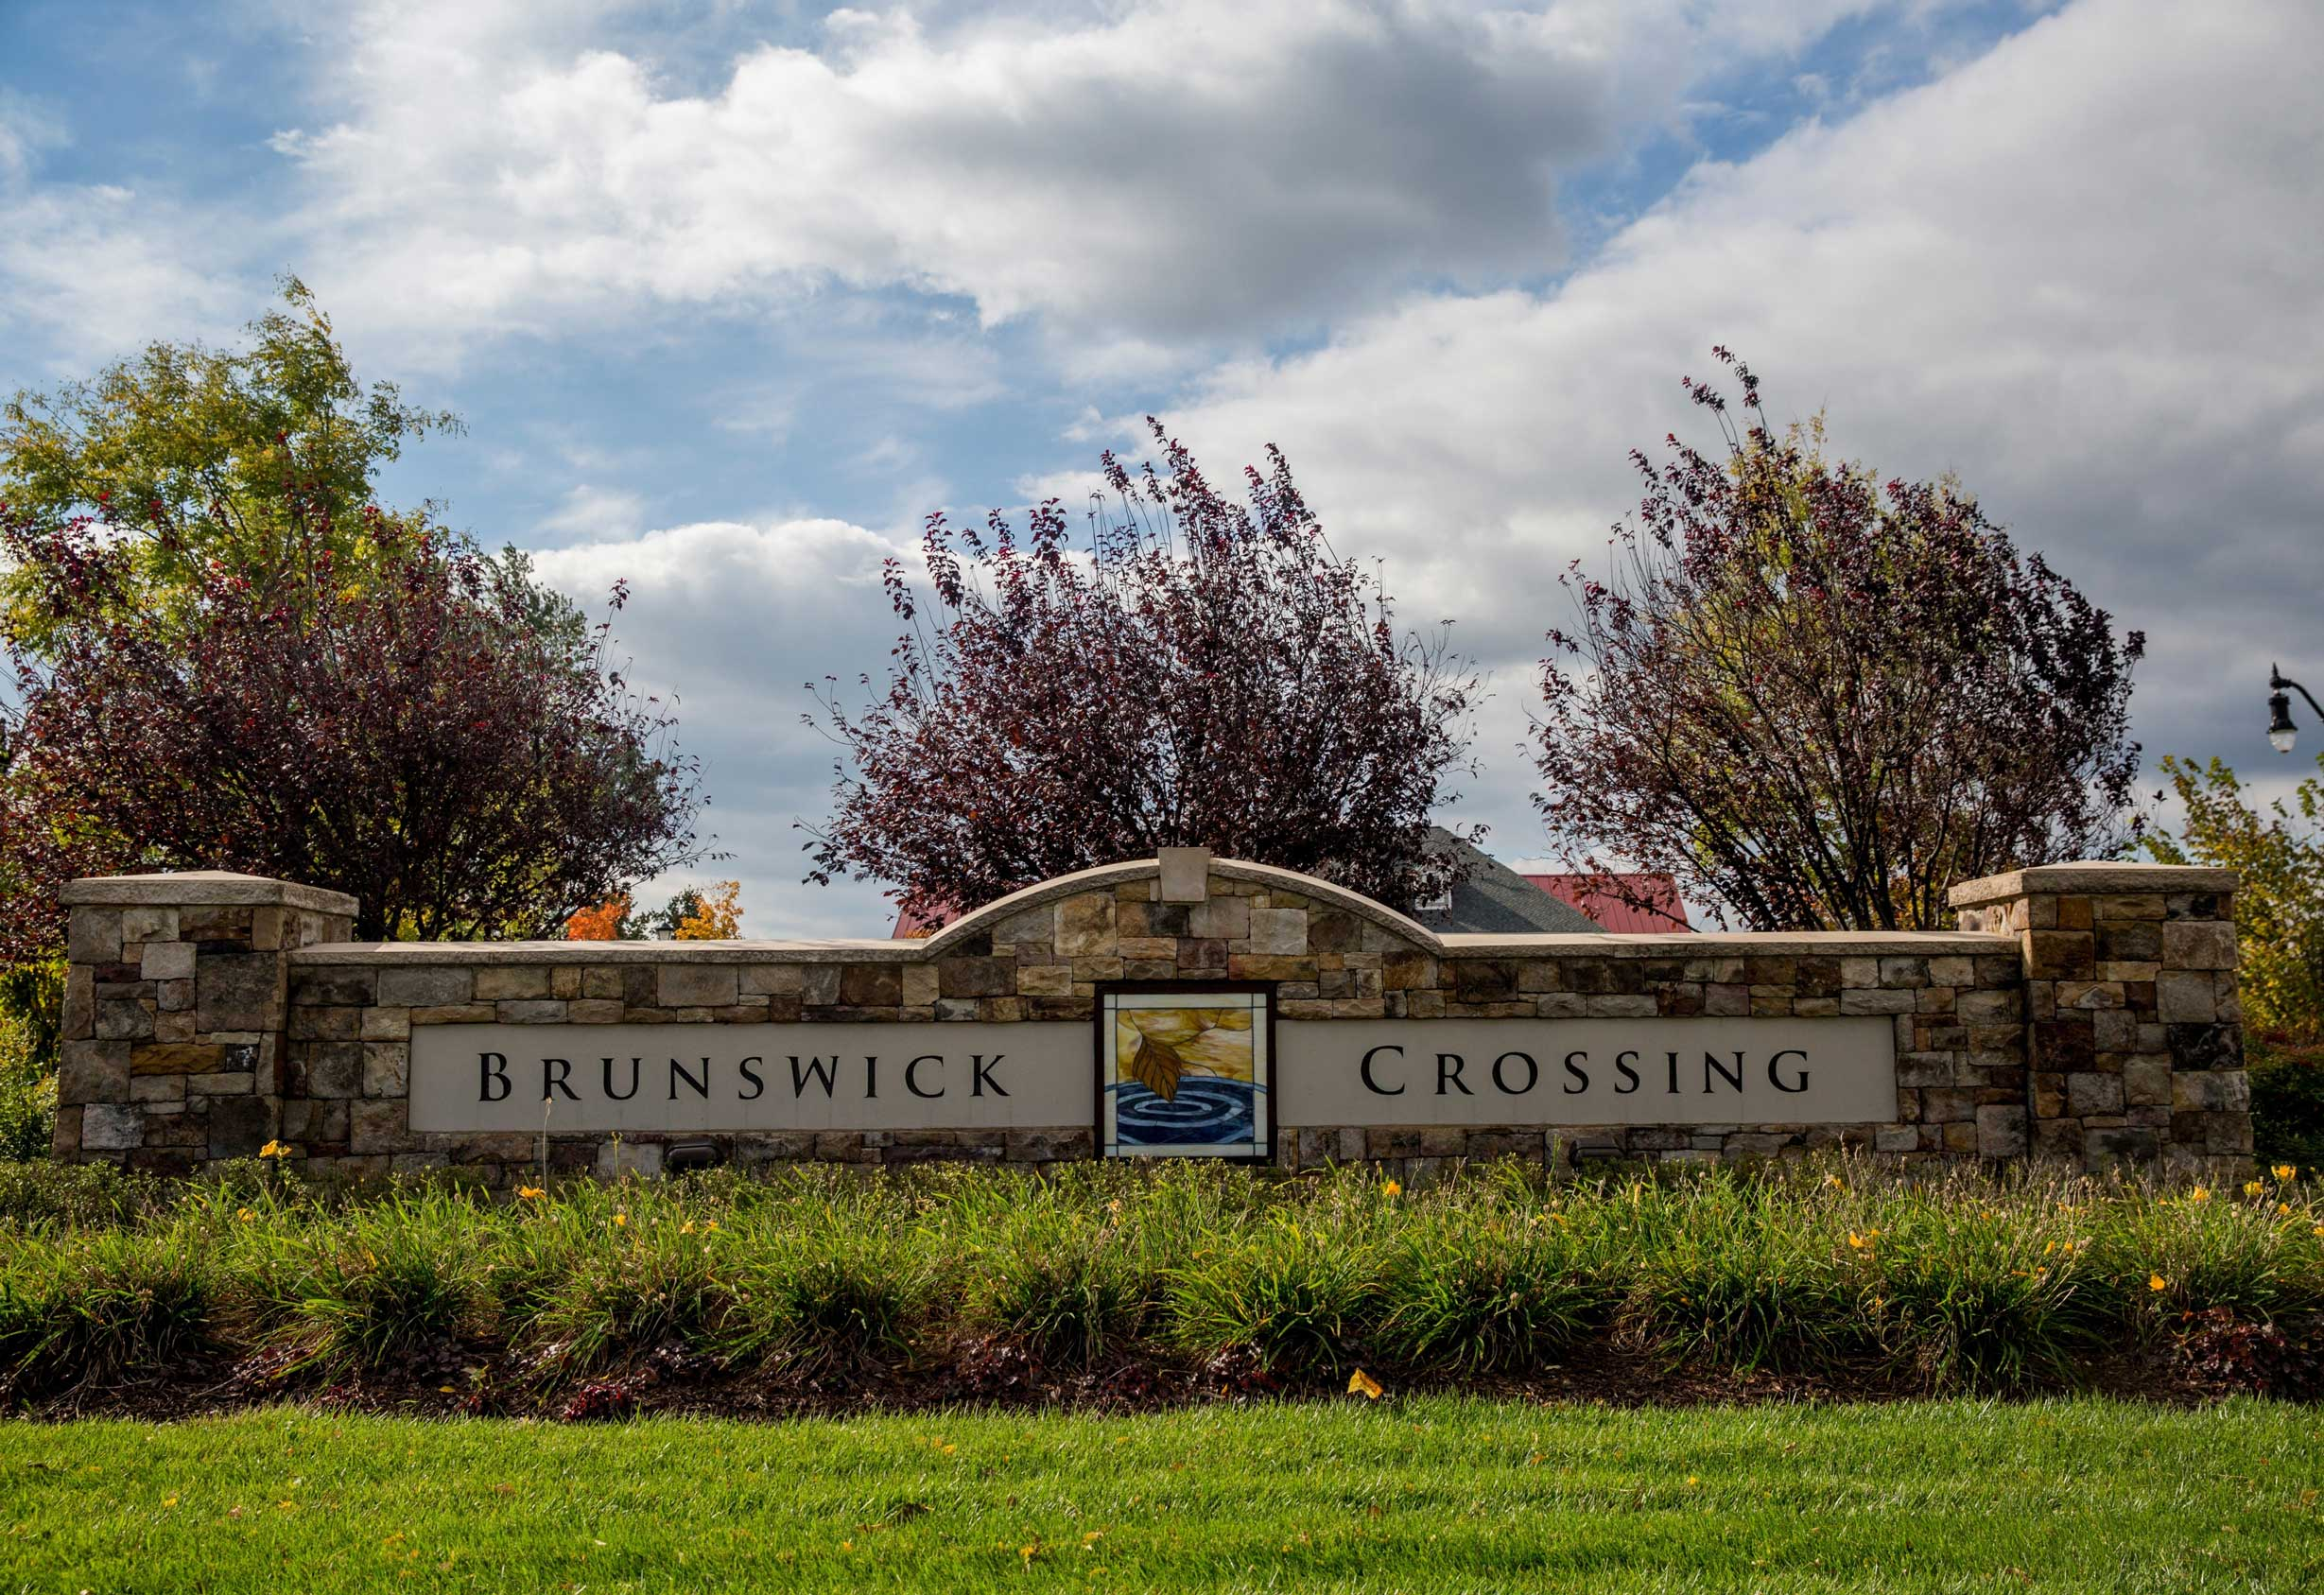 Brunswick_Crossing_089-785438-edited.jpg